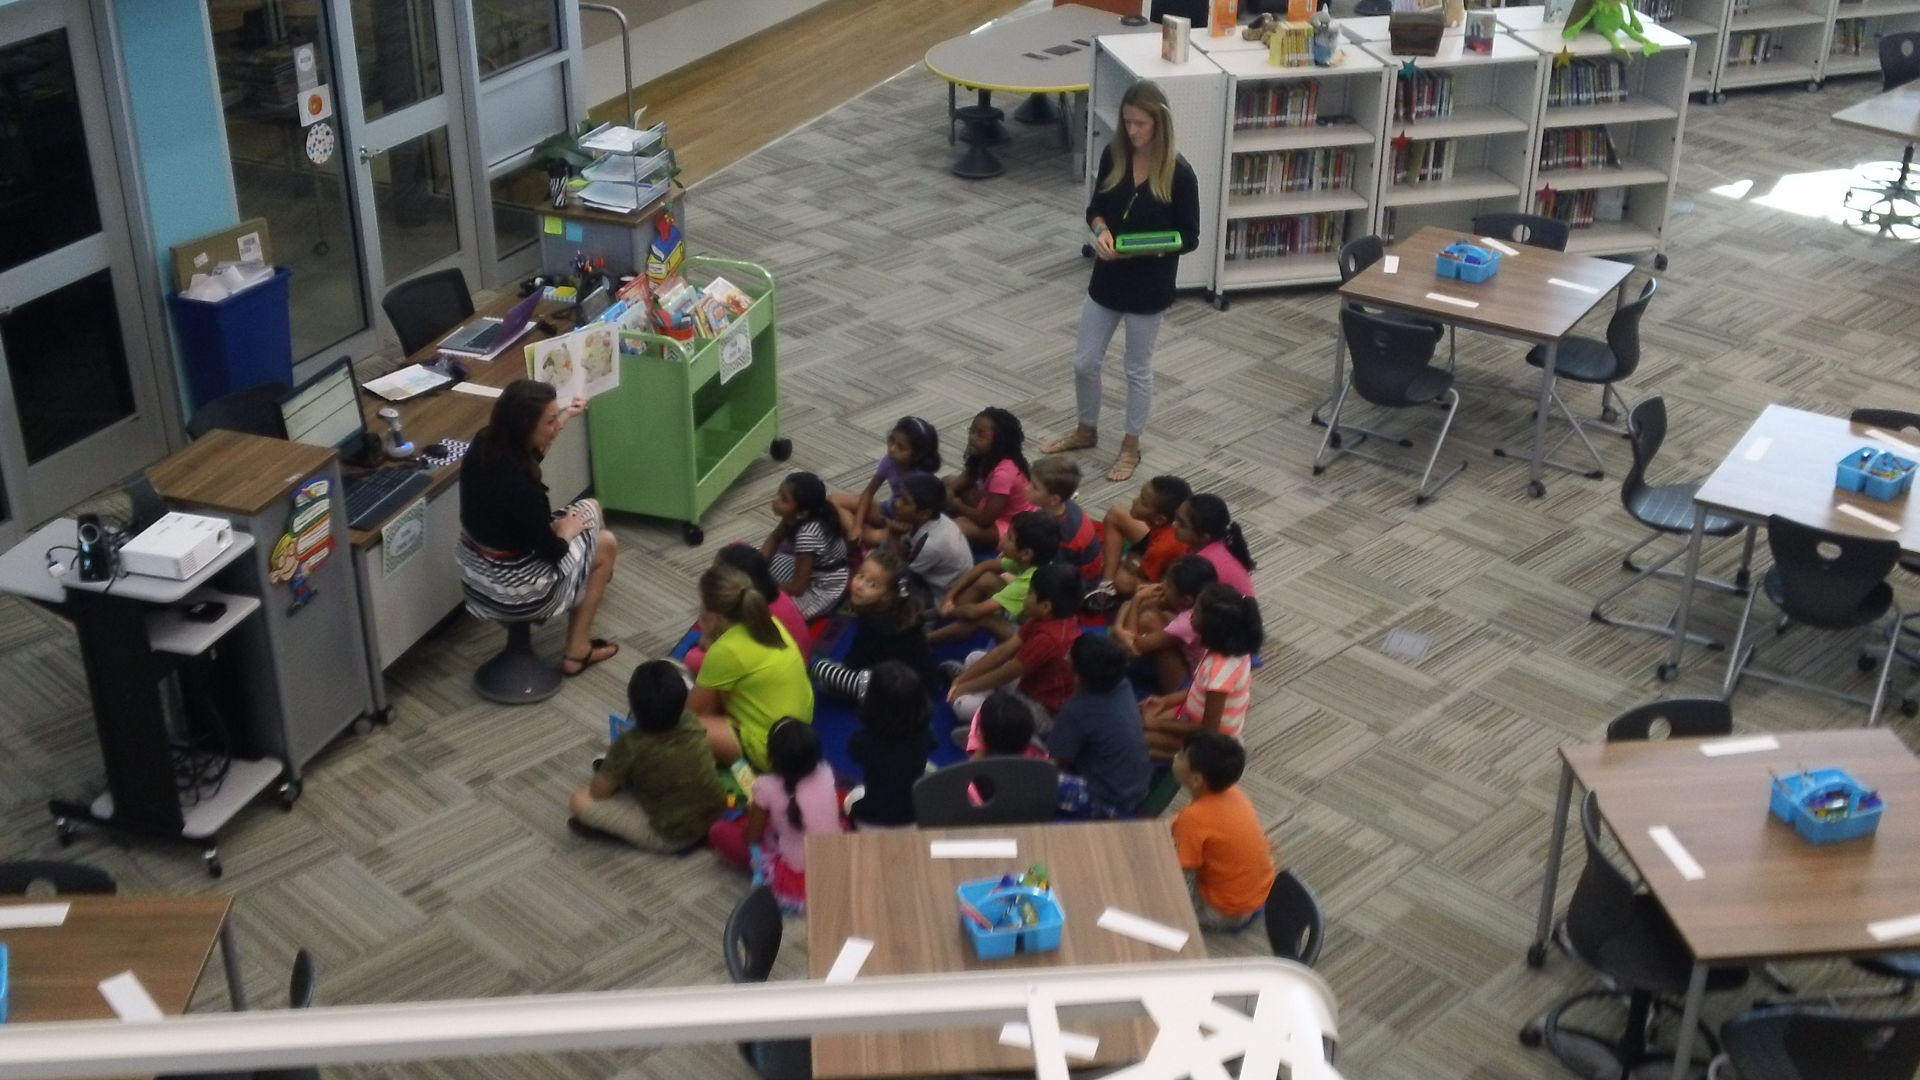 Elementary Classrooms Of The Future : A look into the future at lee elementary school coppell gazette